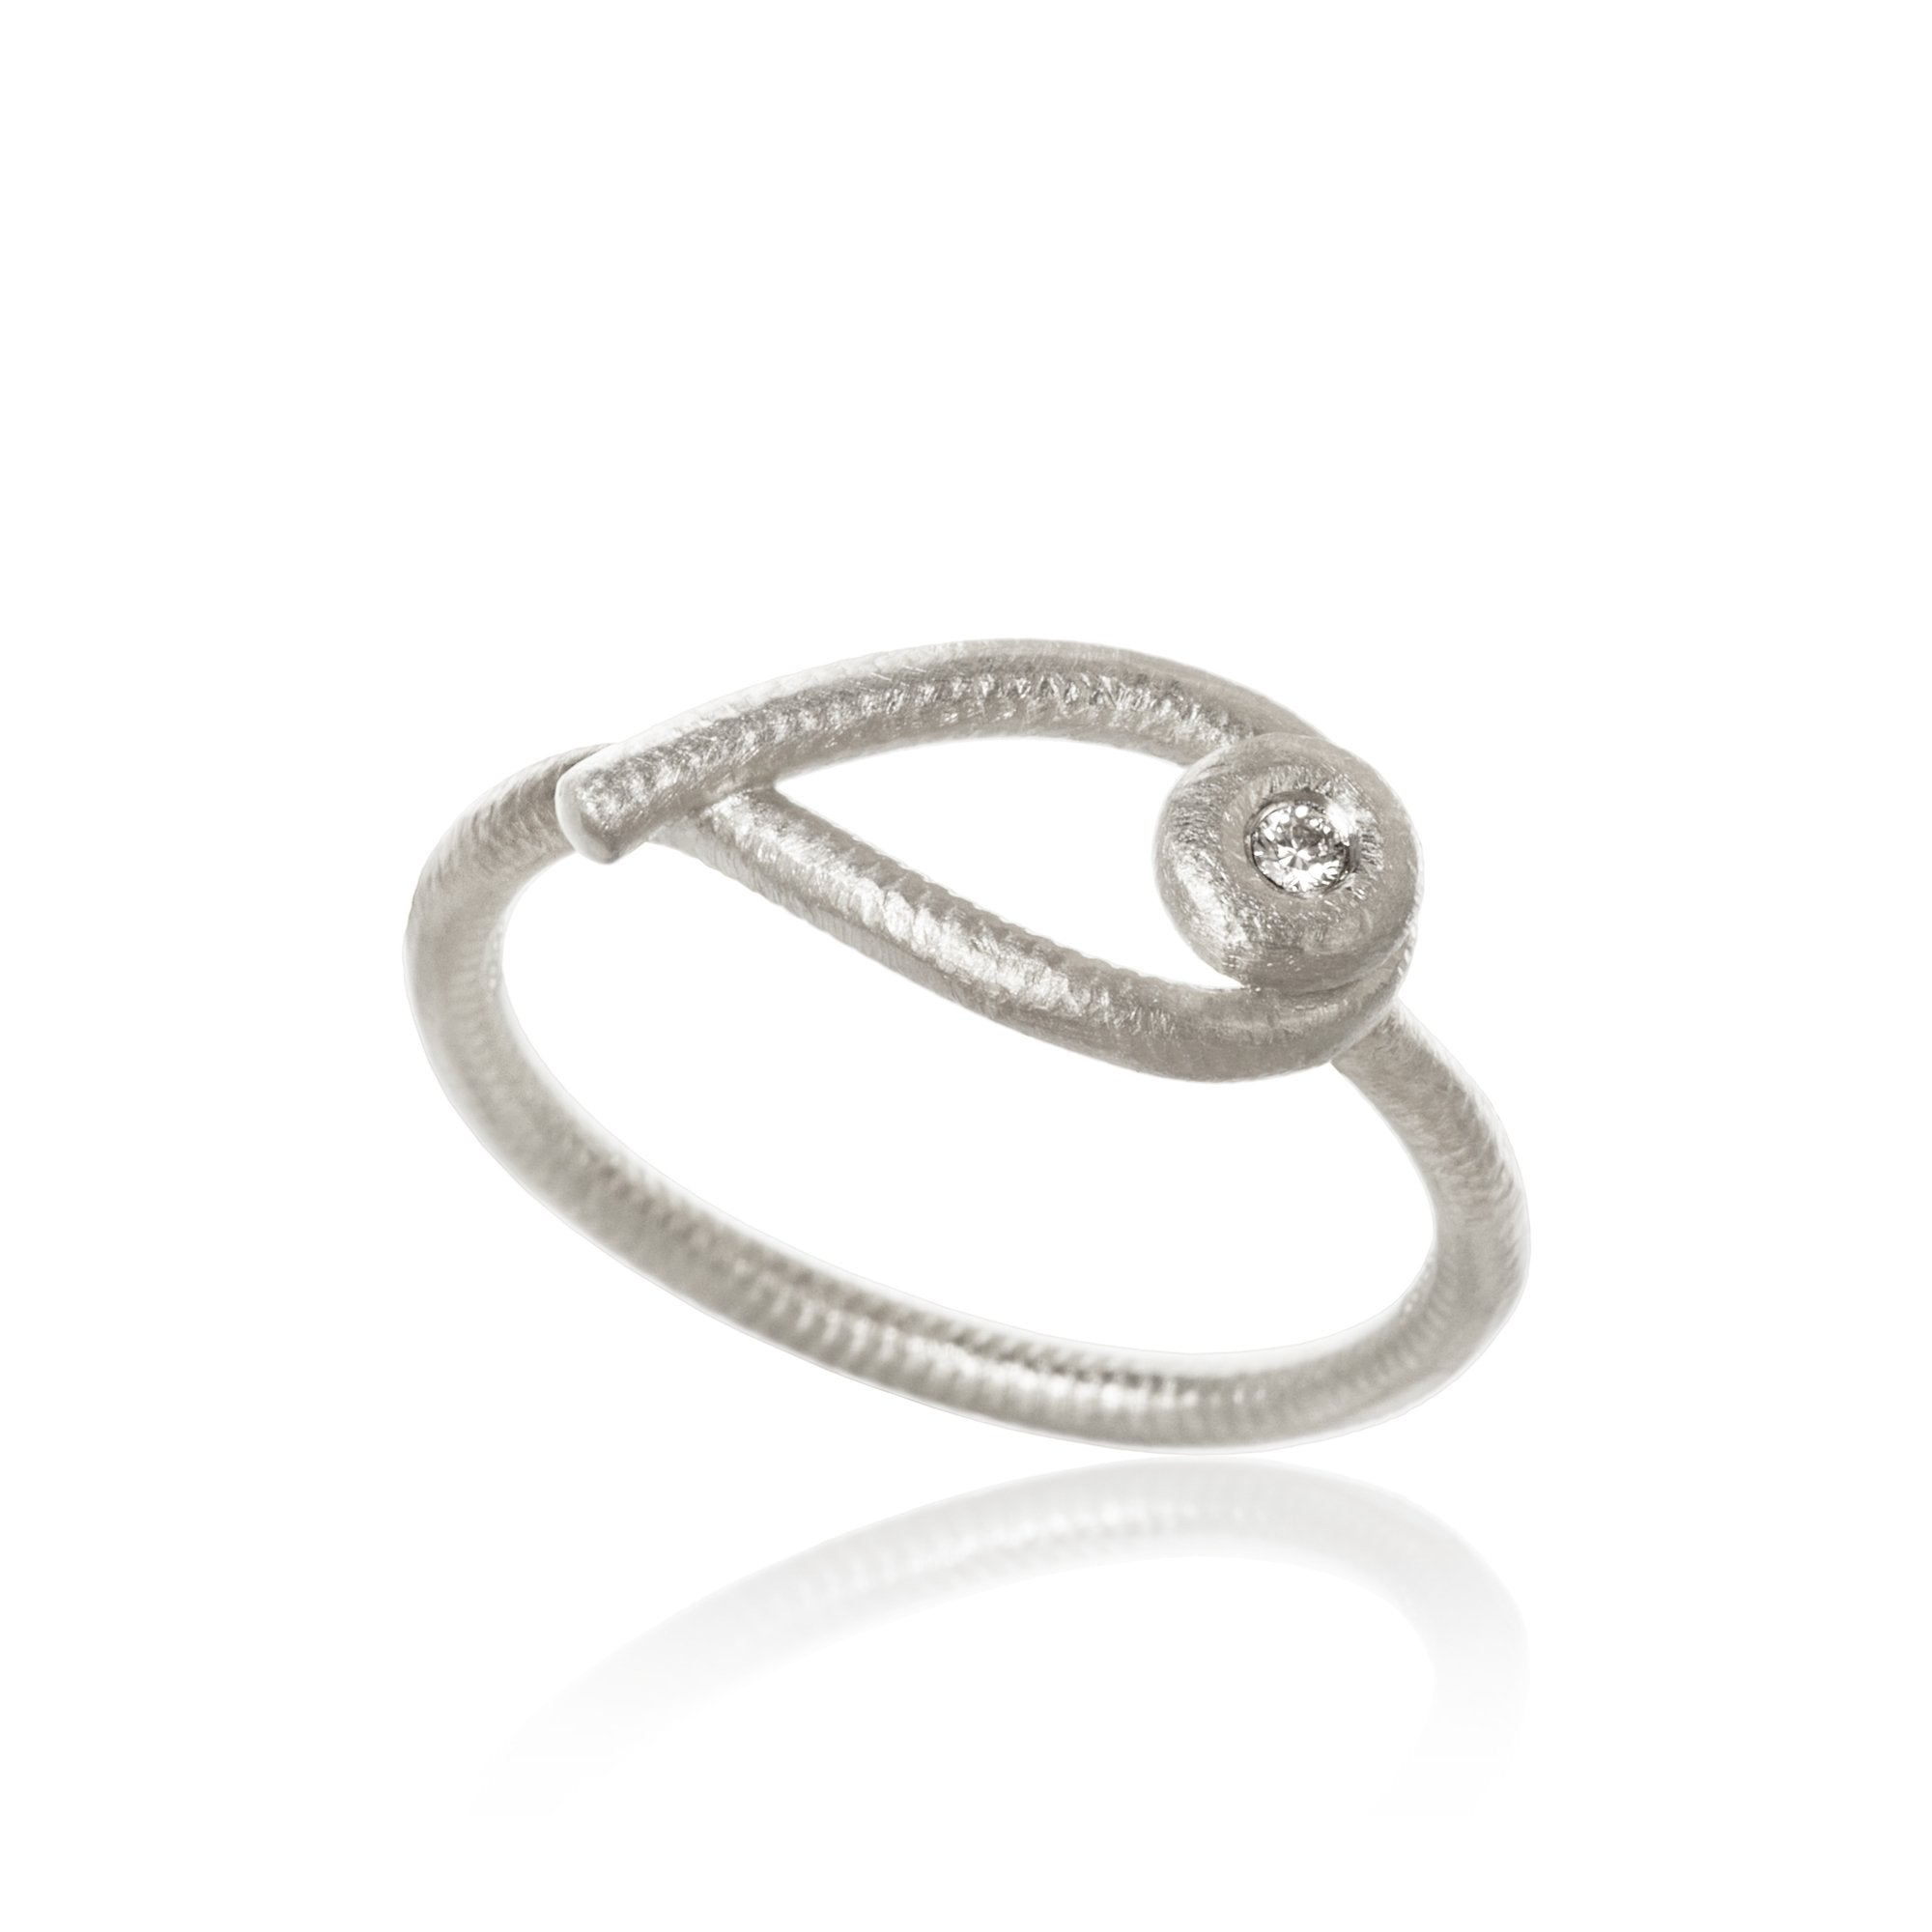 Kharisma ring. With 1 brilliant cut diamonds. Total 0,02 ct. F/G, vs, Ex. cut.